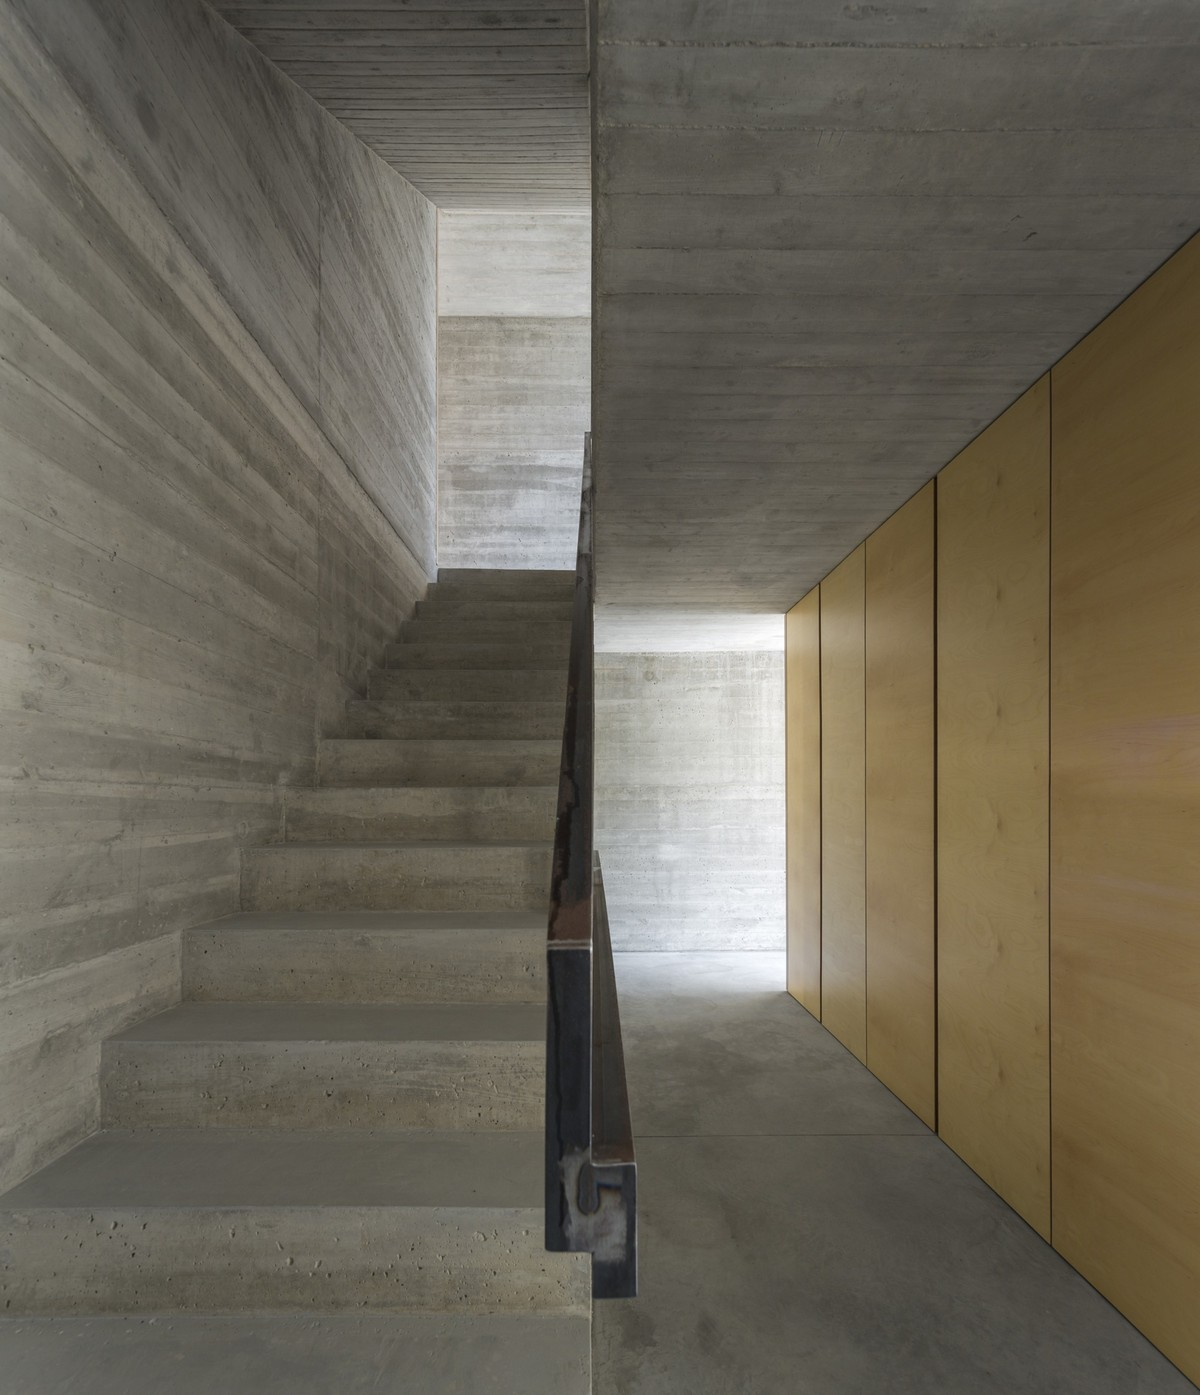 Discover The Minimalistic Architecture Of This Lisbon House minimalistic architecture Discover The Minimalistic Architecture Of This Lisbon House Discover The Minimalistic Architecture Of This Lisbon House 3